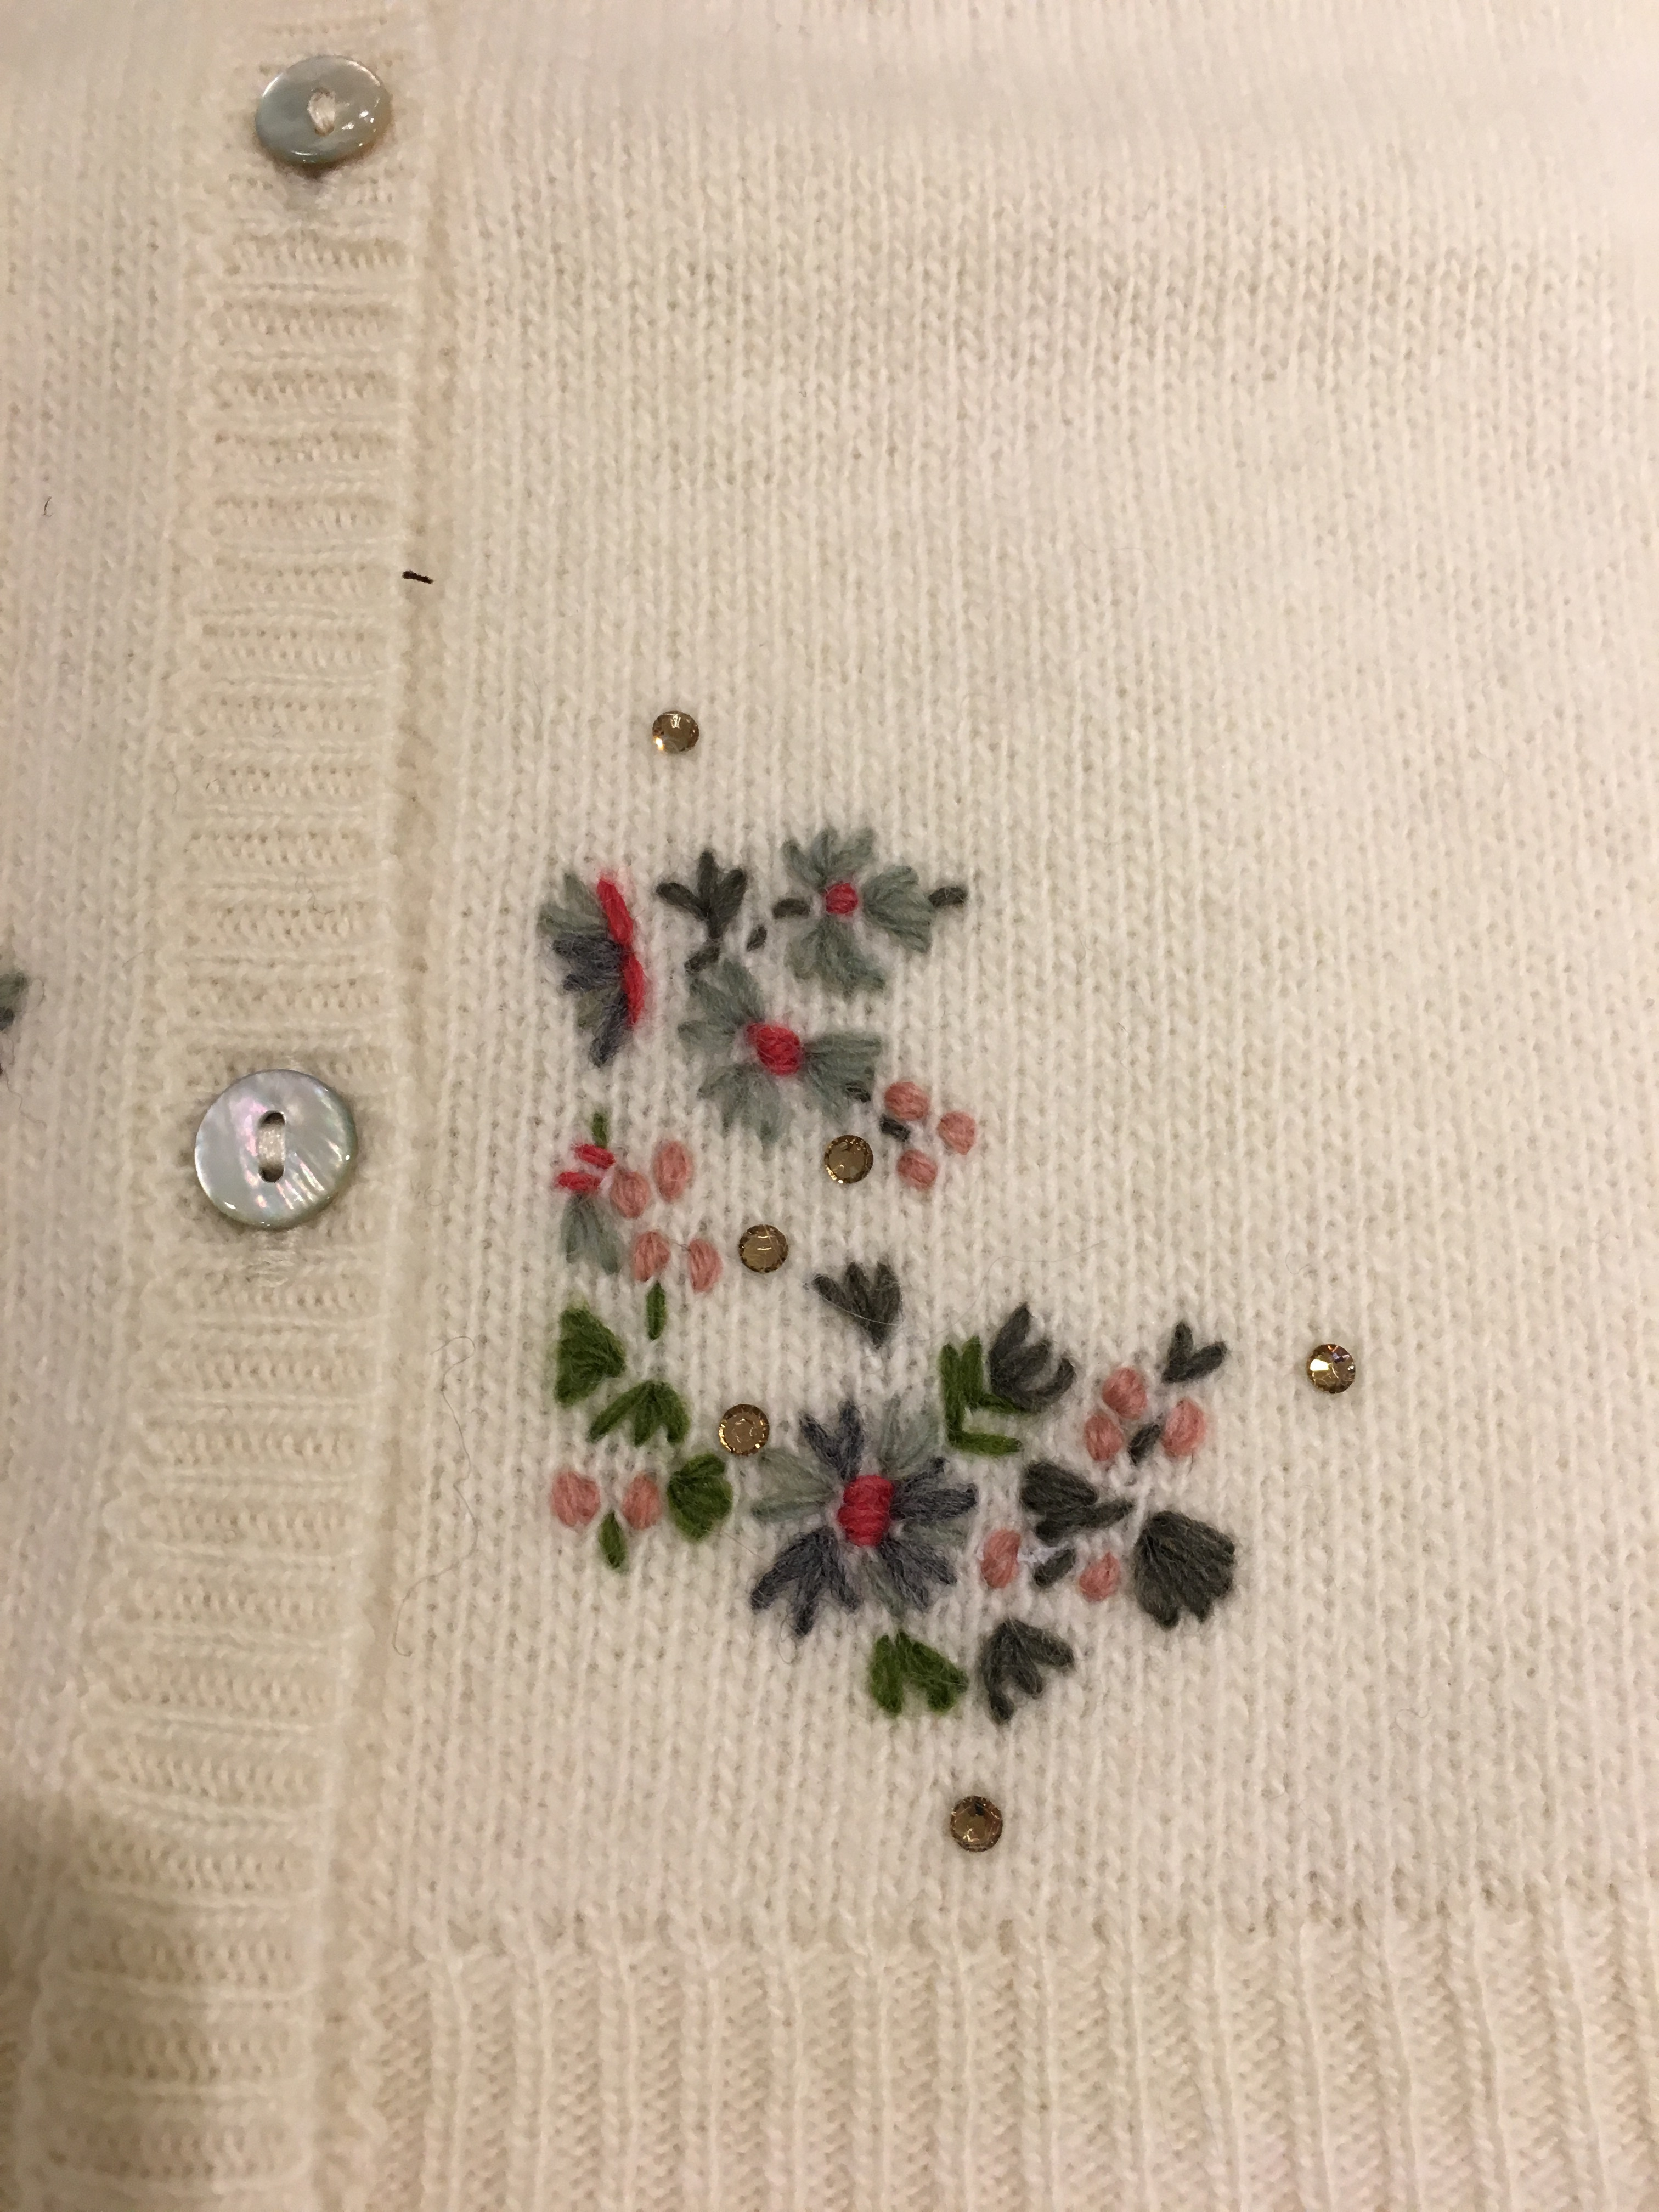 AW17☆FILLE カーディガン刺繍ホワイト3.4.6A